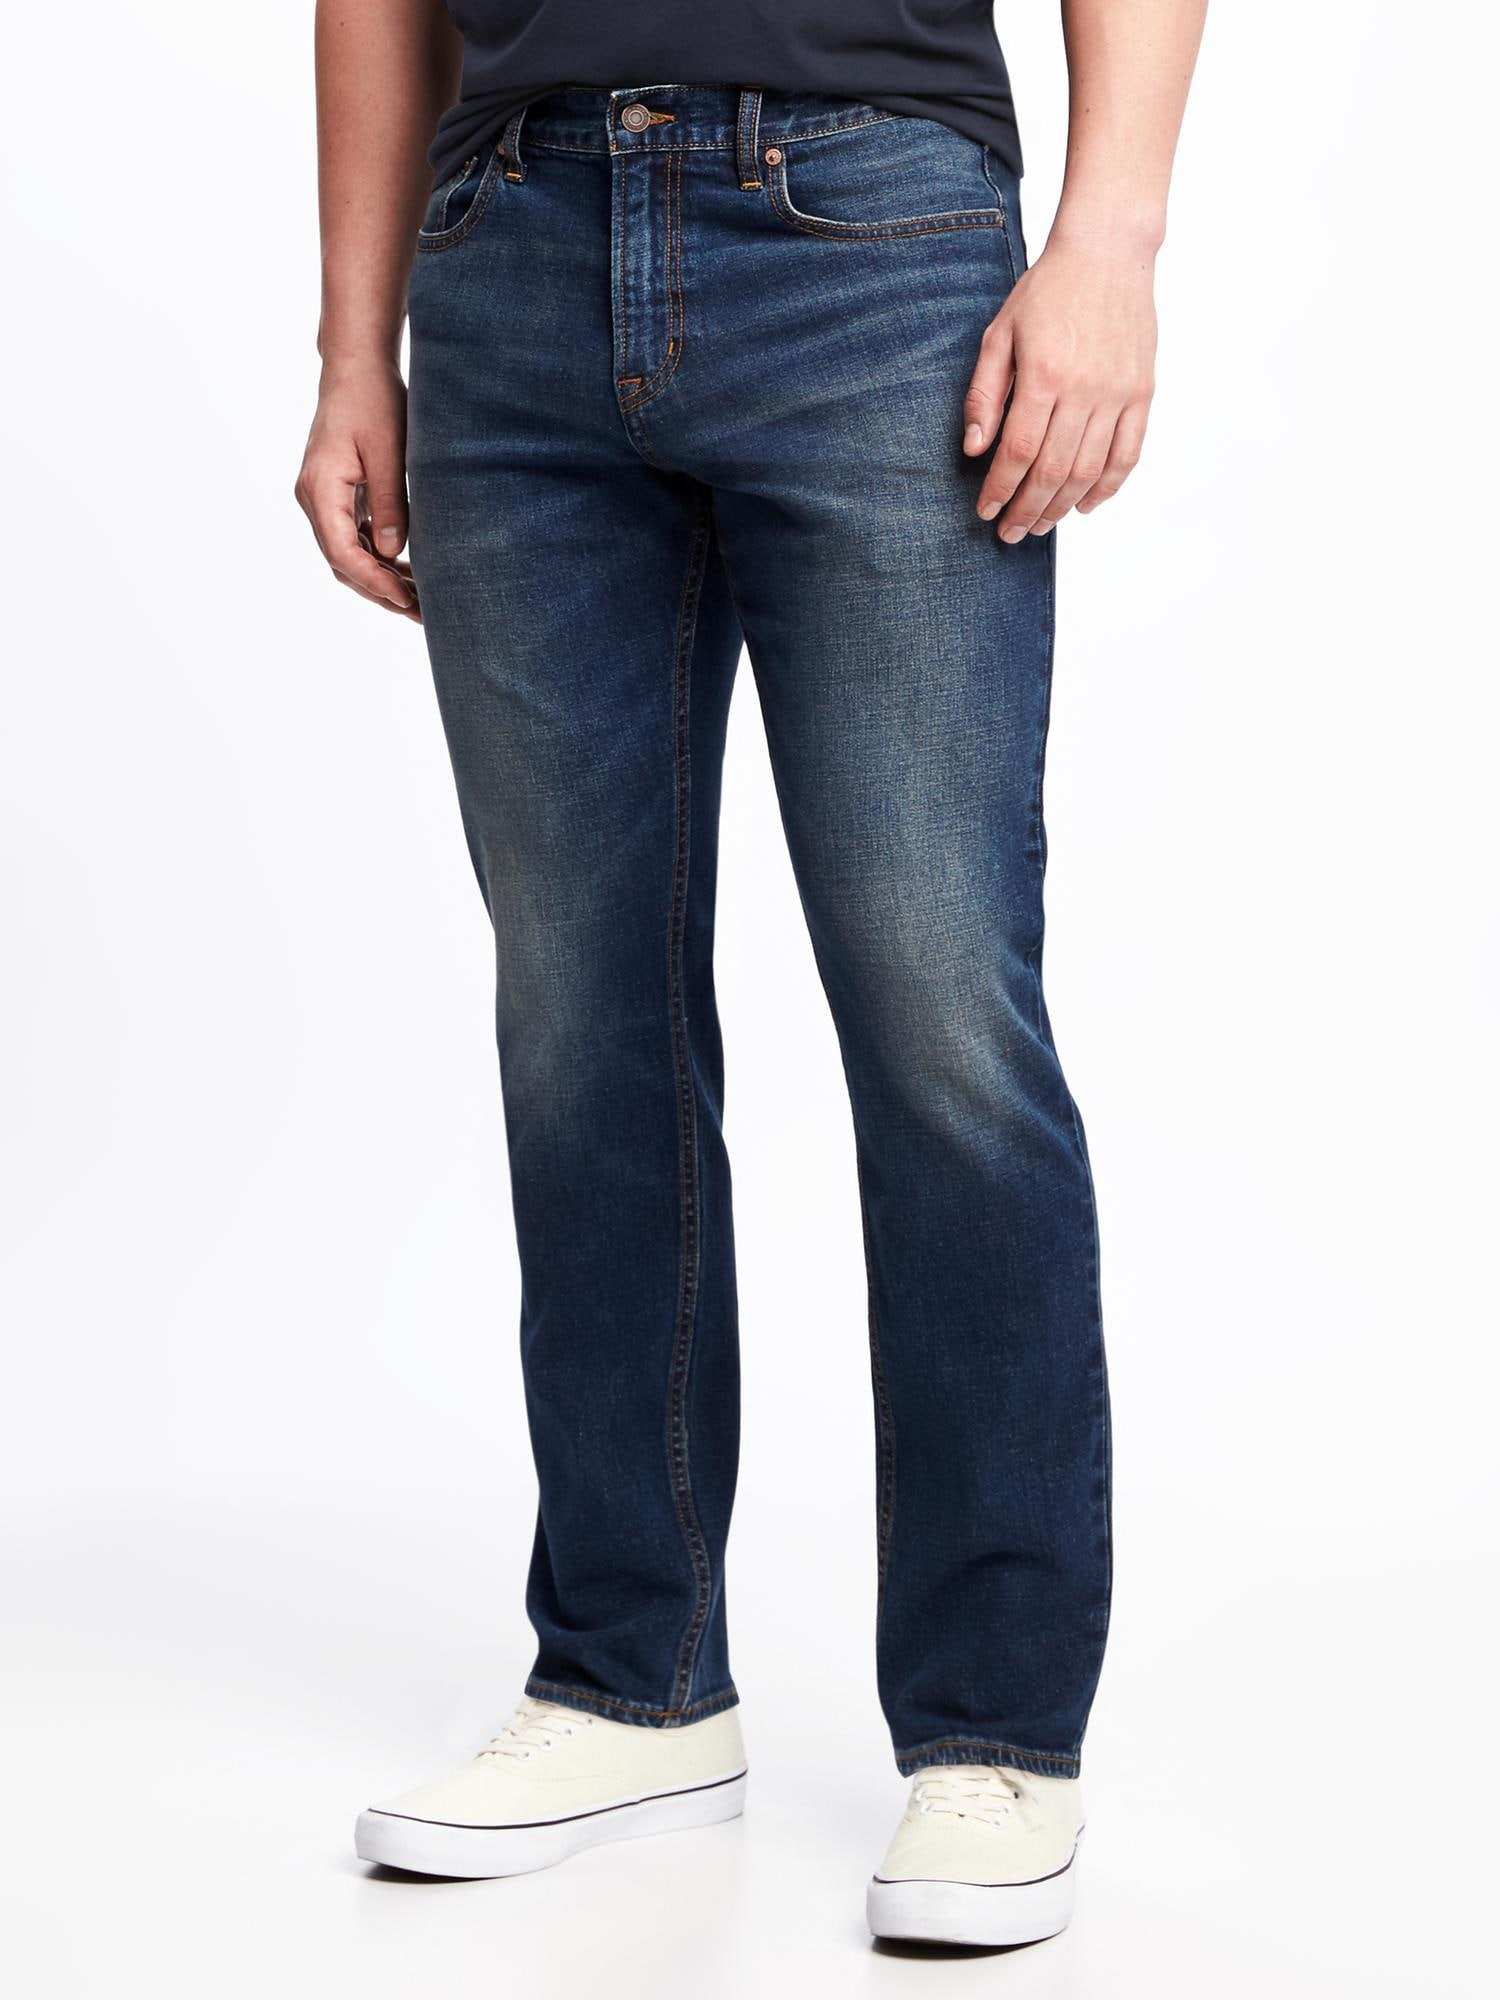 Athletic Built-In Flex Jeans for Men  c3068edc6206